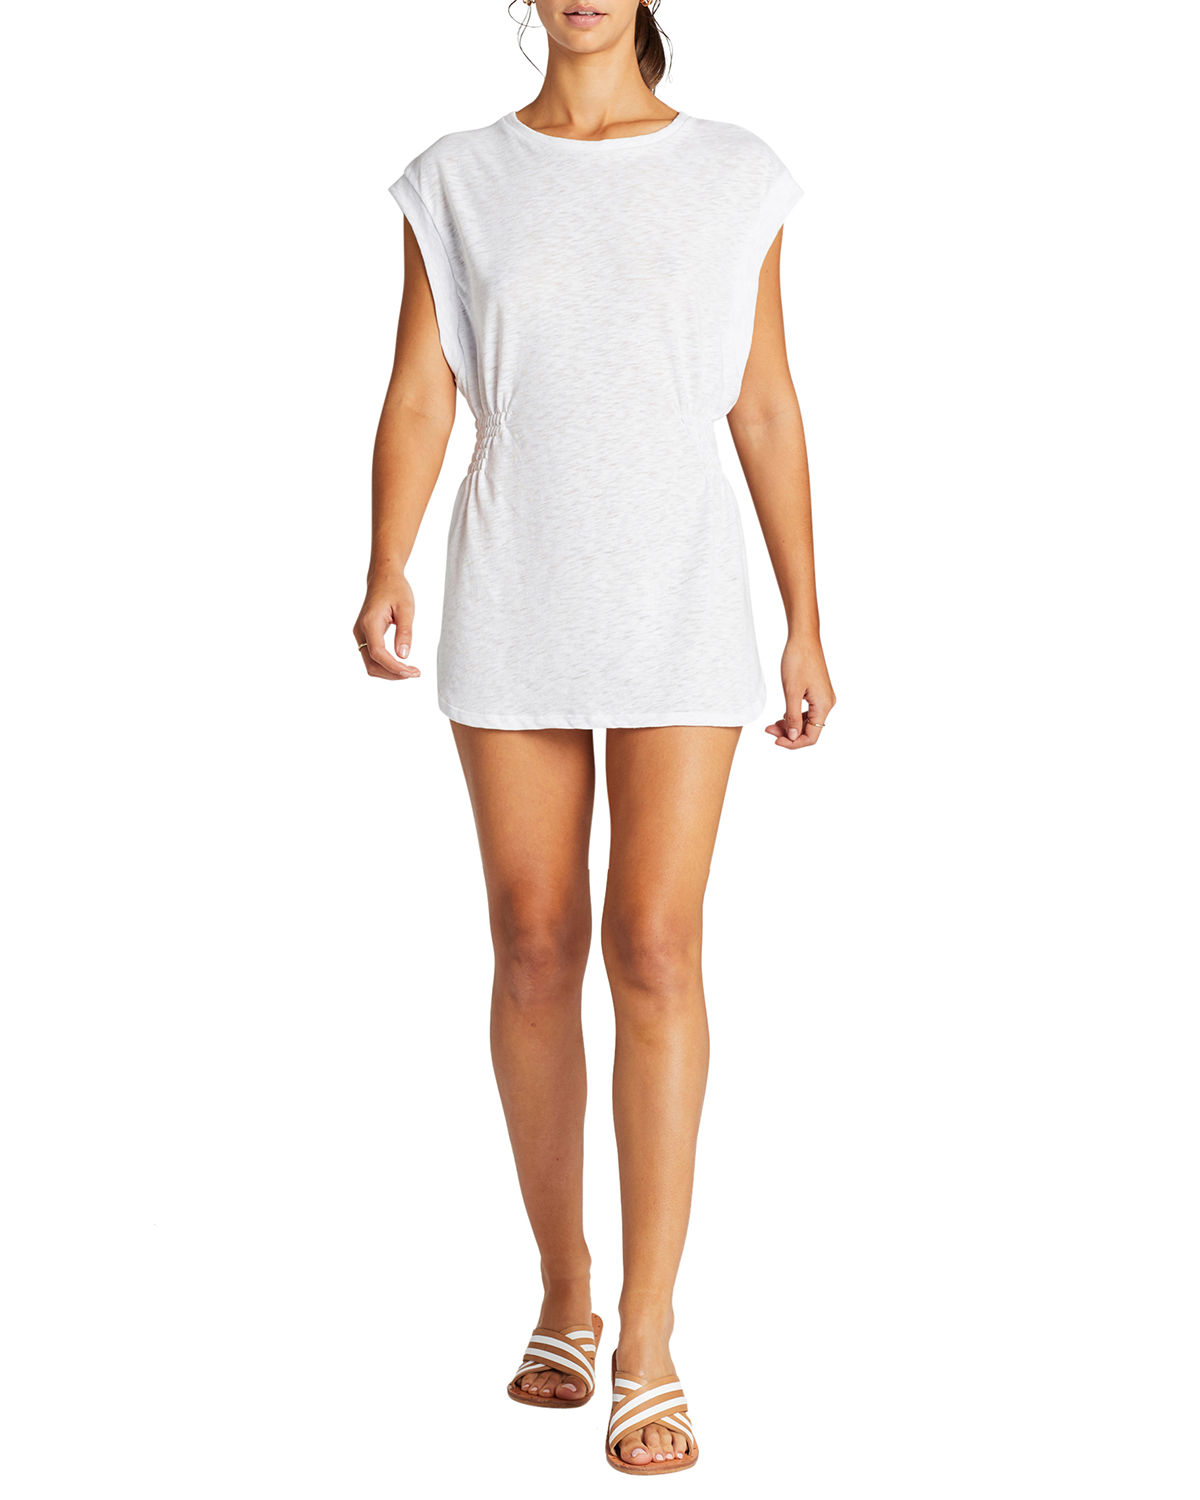 Vitamin A SWAMI SLEEVELESS COVERUP TUNIC